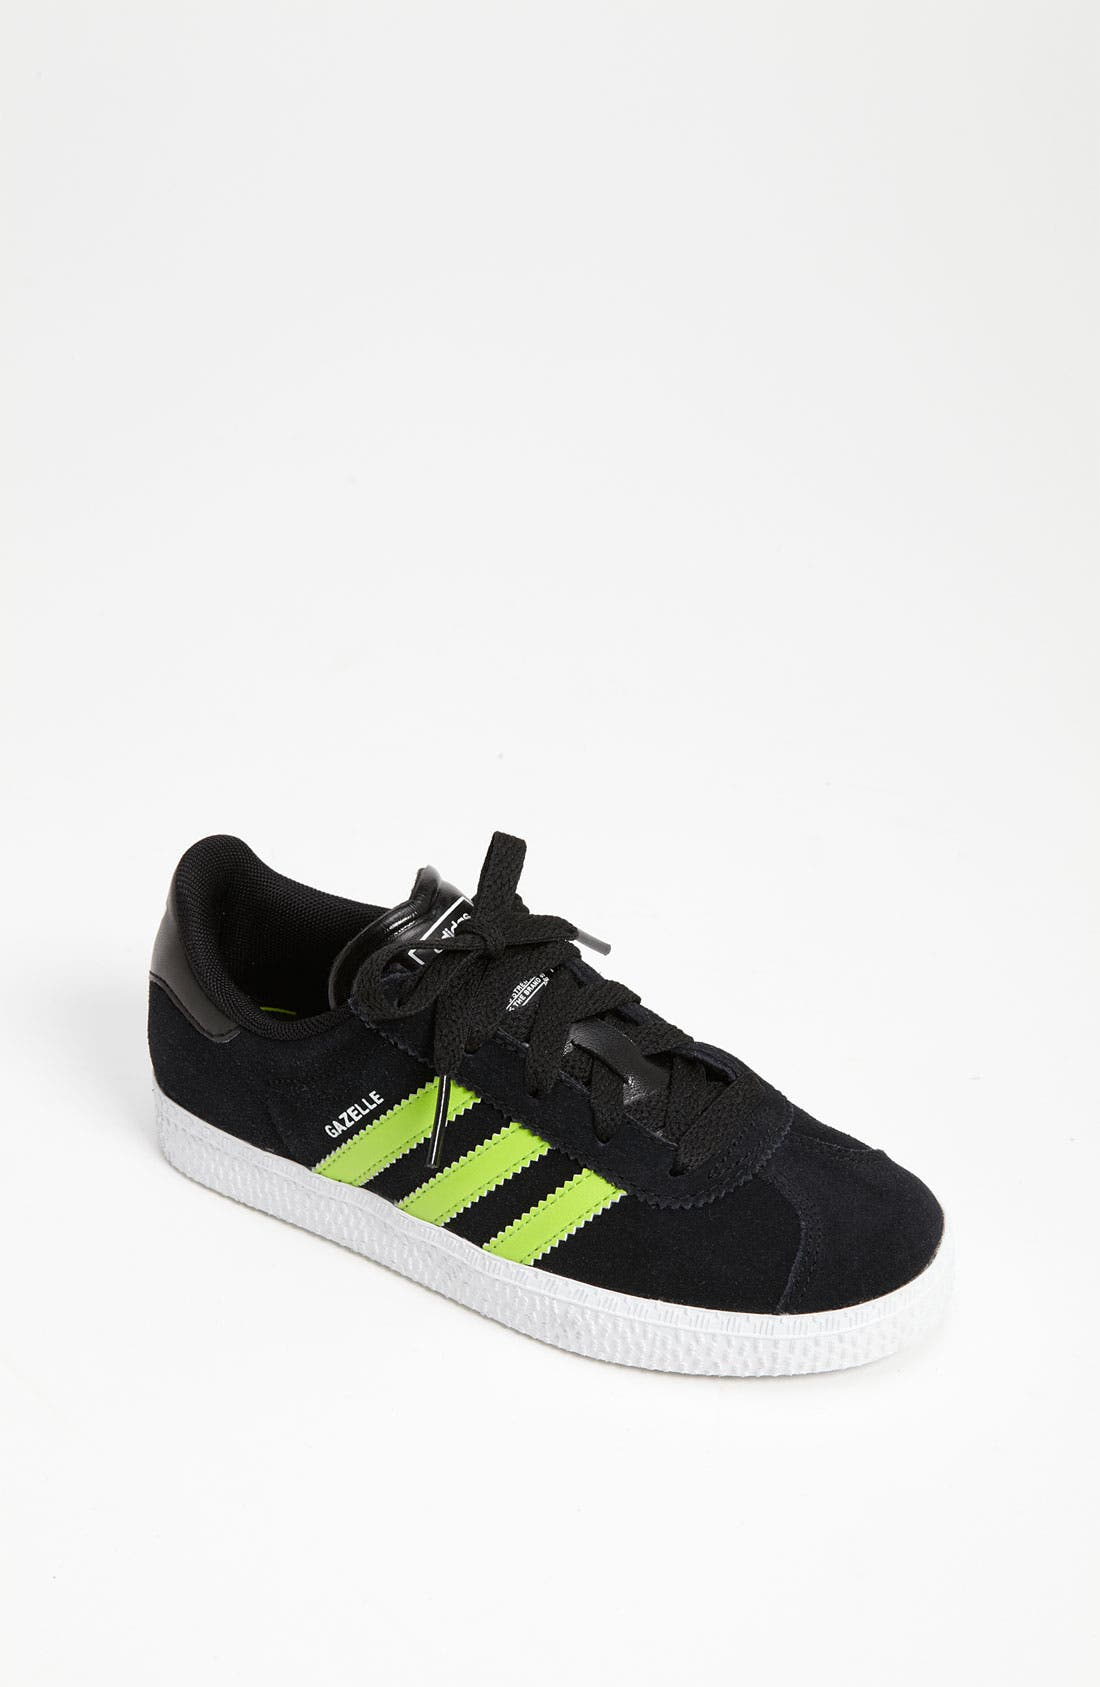 Alternate Image 1 Selected - adidas 'Gazelle' Sneaker (Toddler, Little Kid & Big Kid)